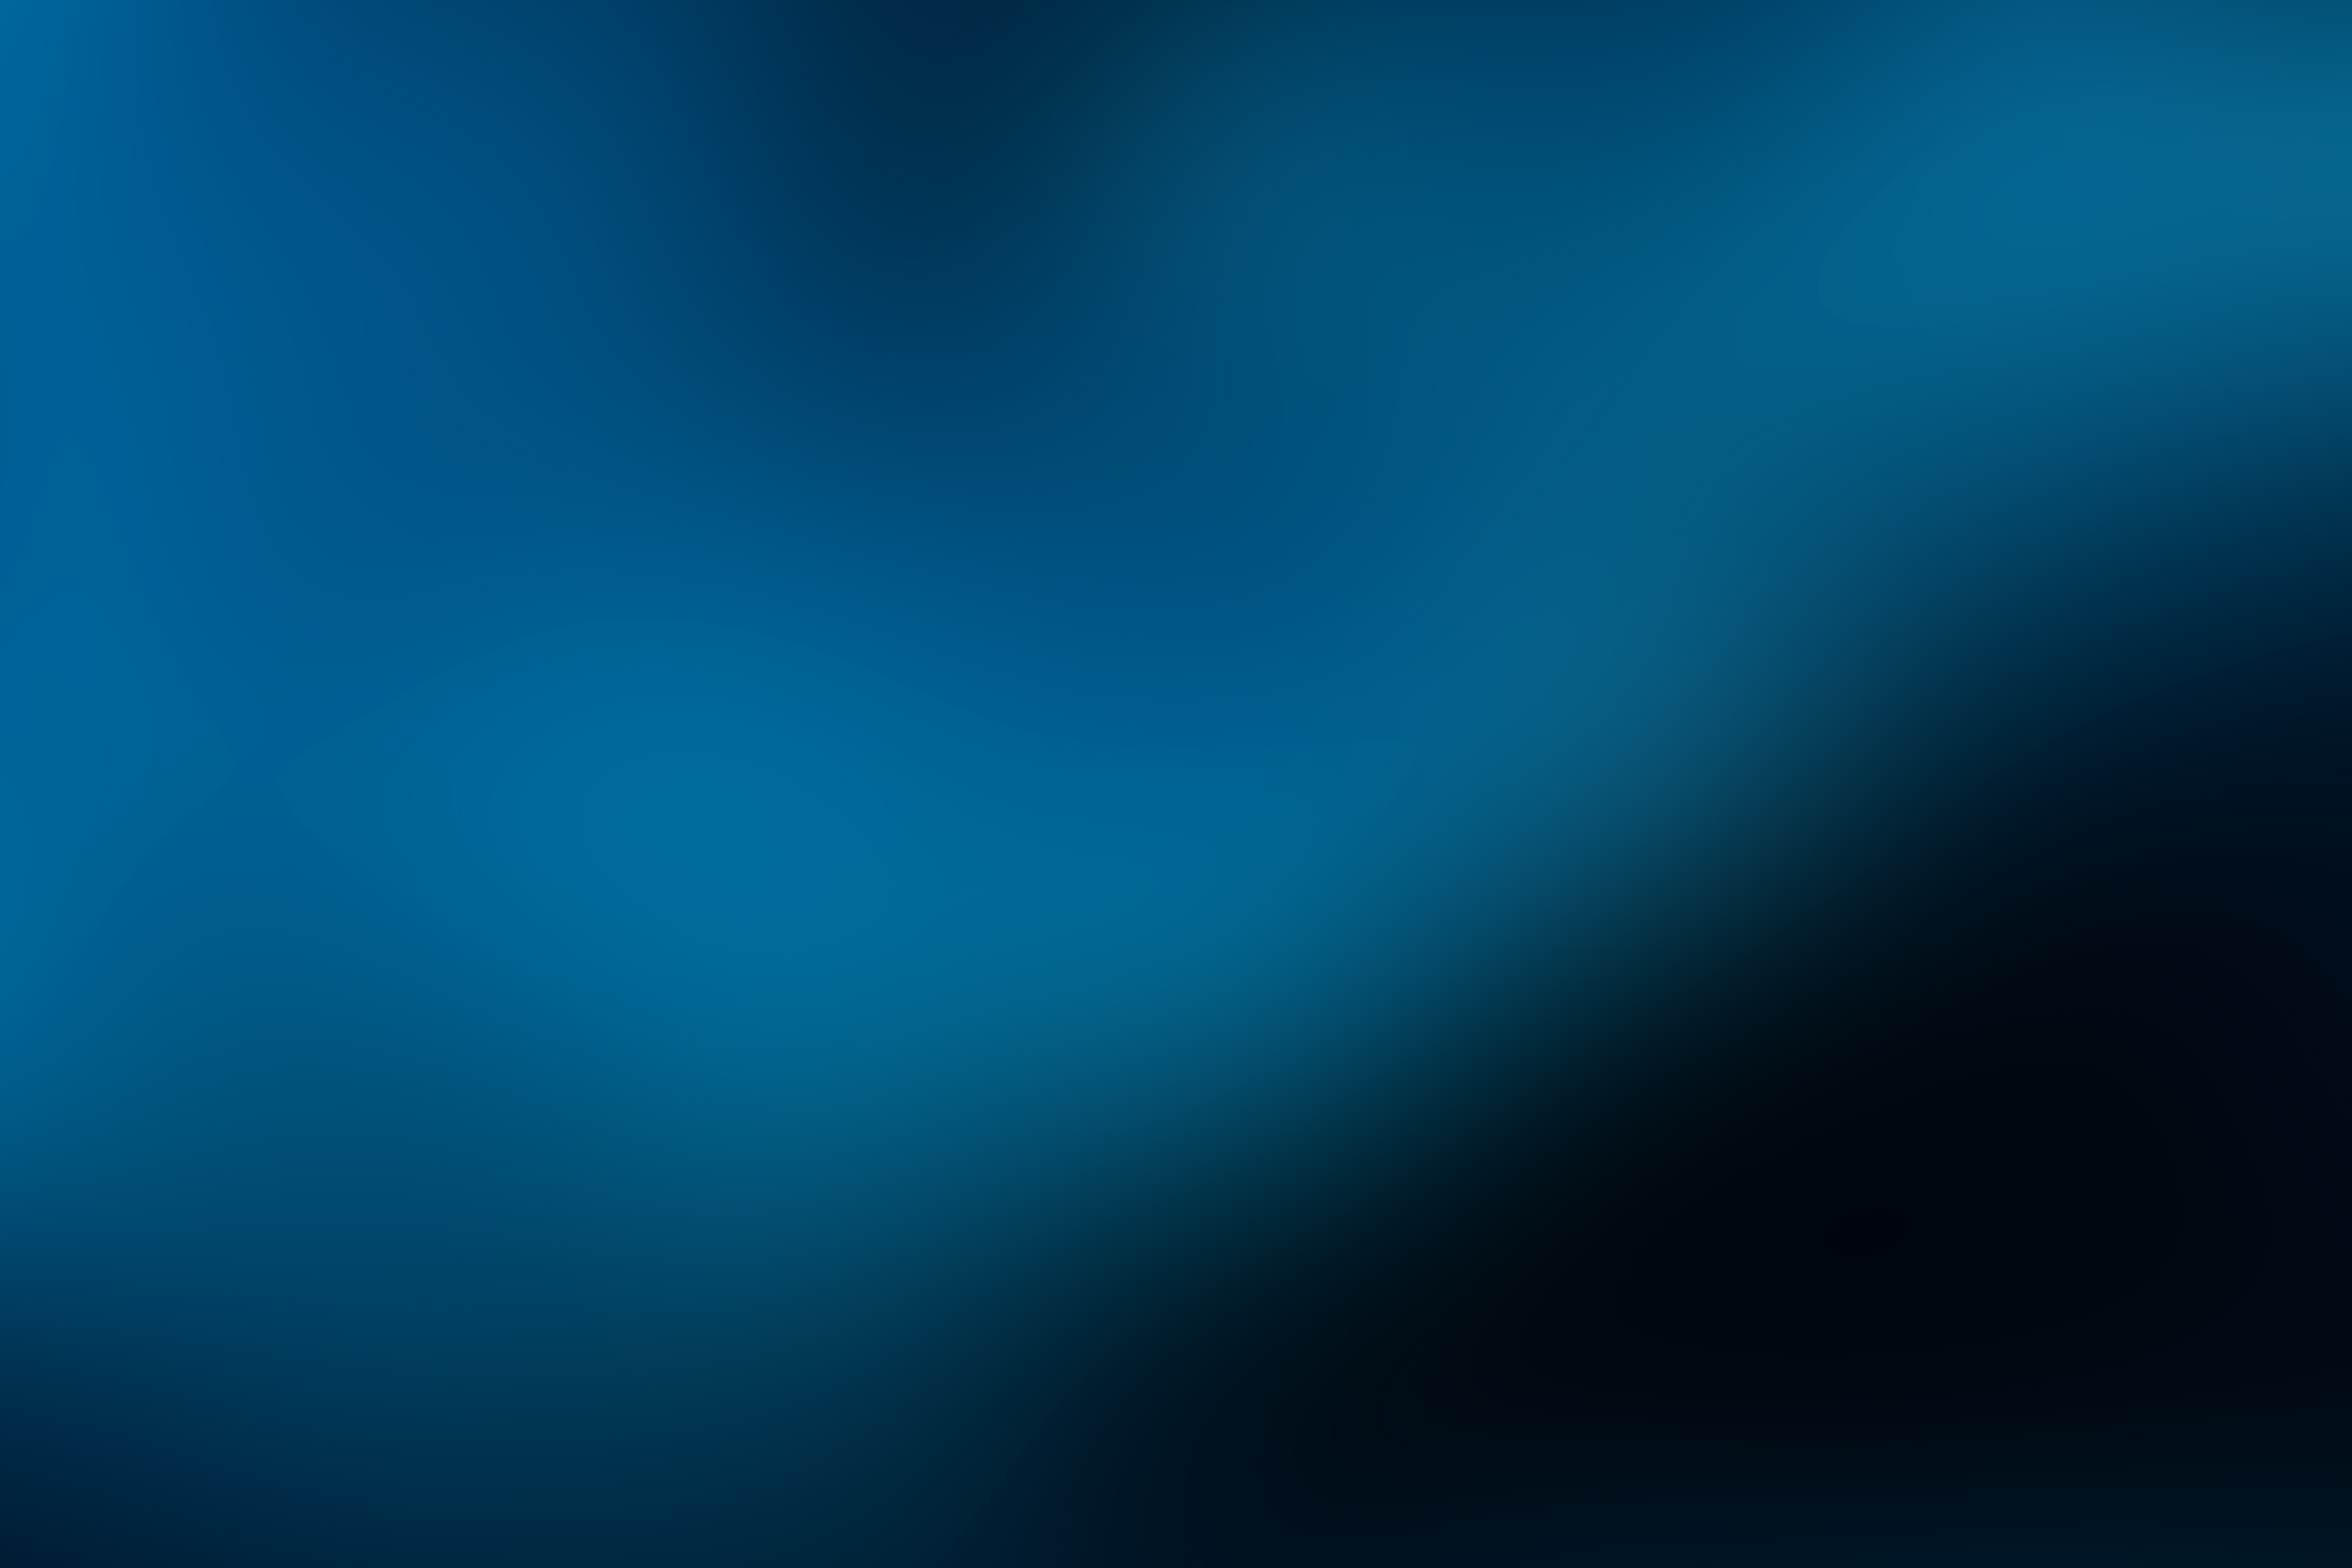 Windows Anime Girls Wallpapers Blue Abstract Simple Background Hd Abstract 4k